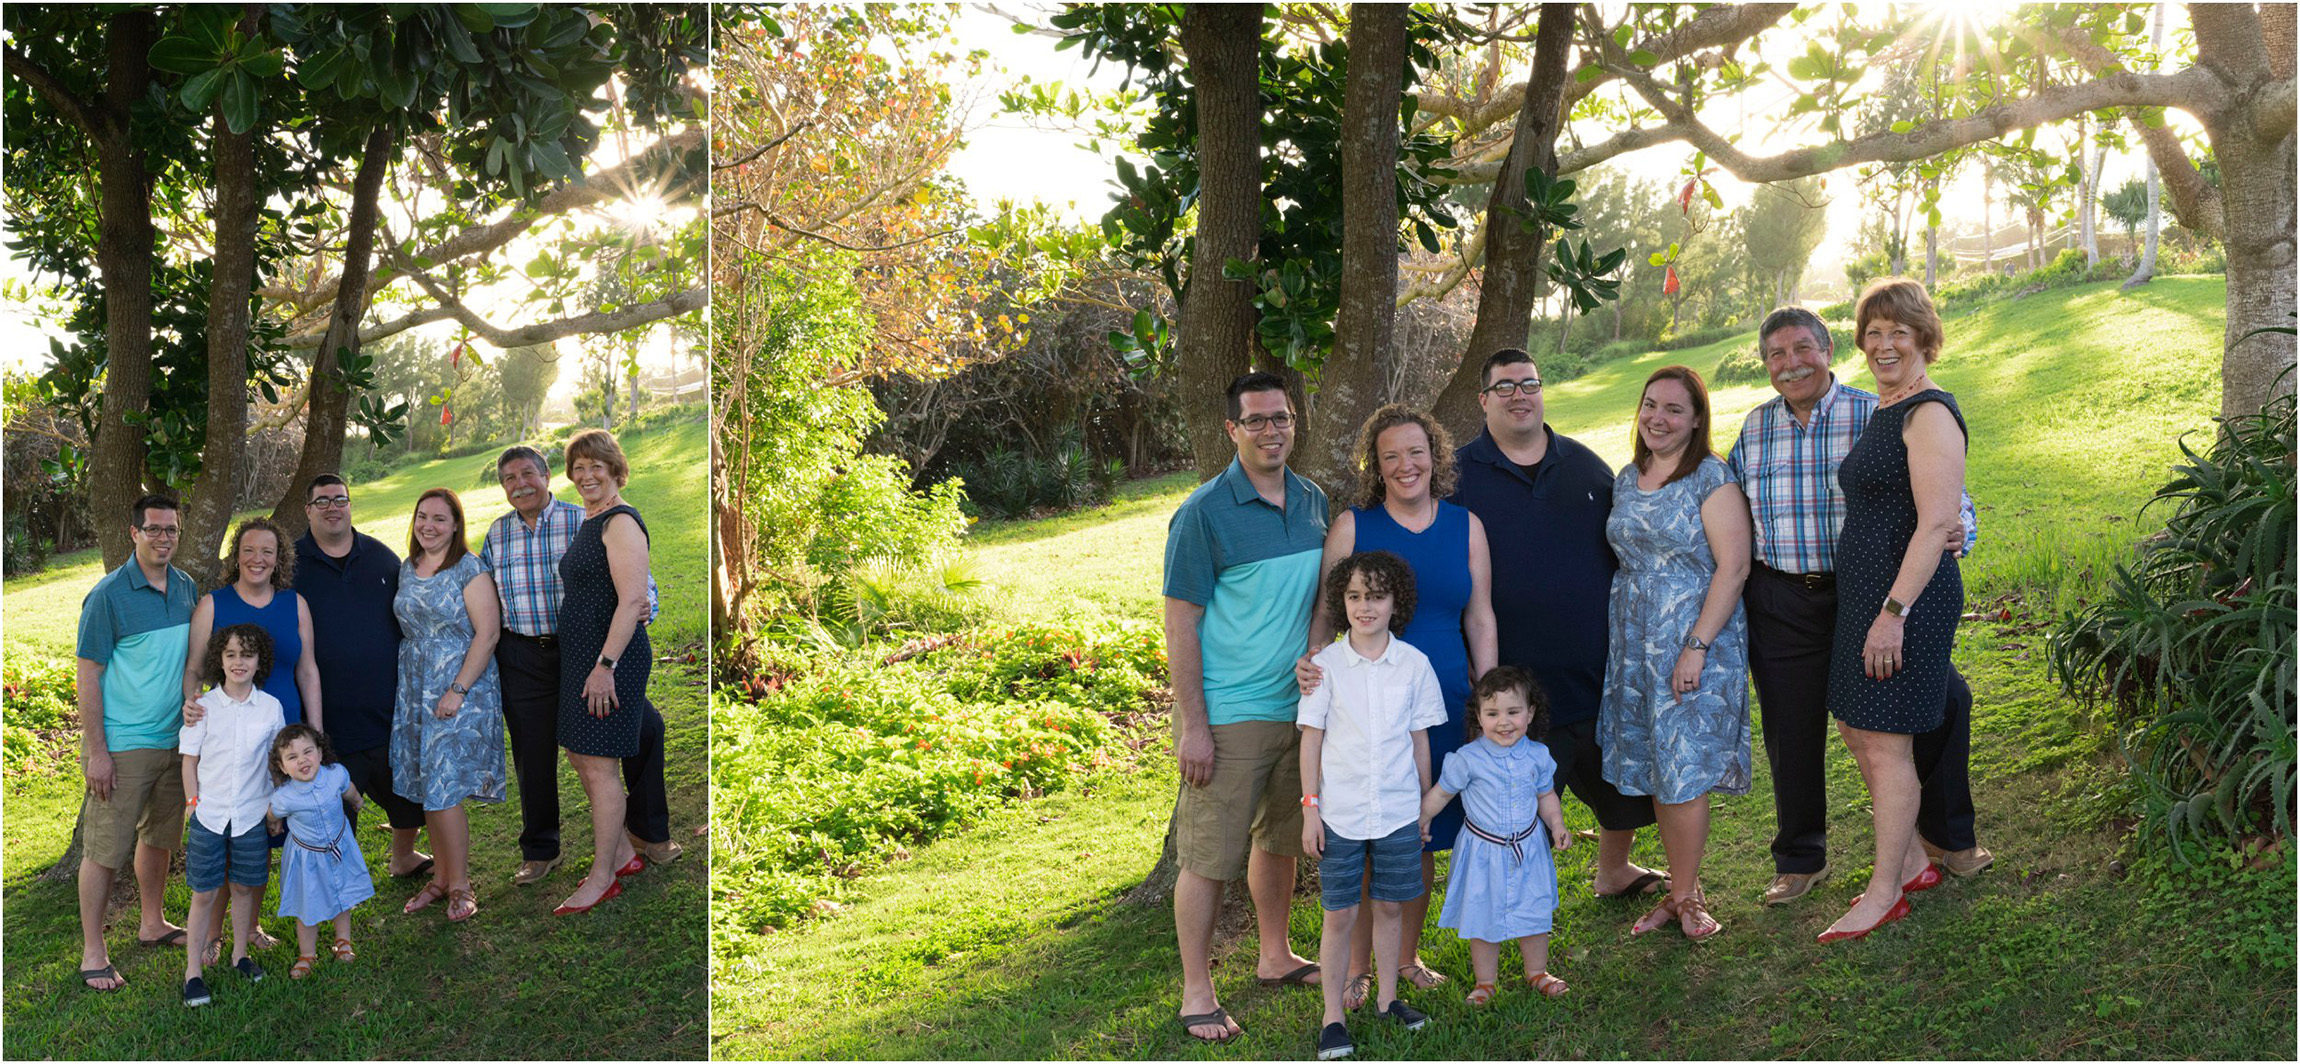 ©FianderFoto_Bermuda Photographer_Church Bay Park_Ashley_Family_001.jpg